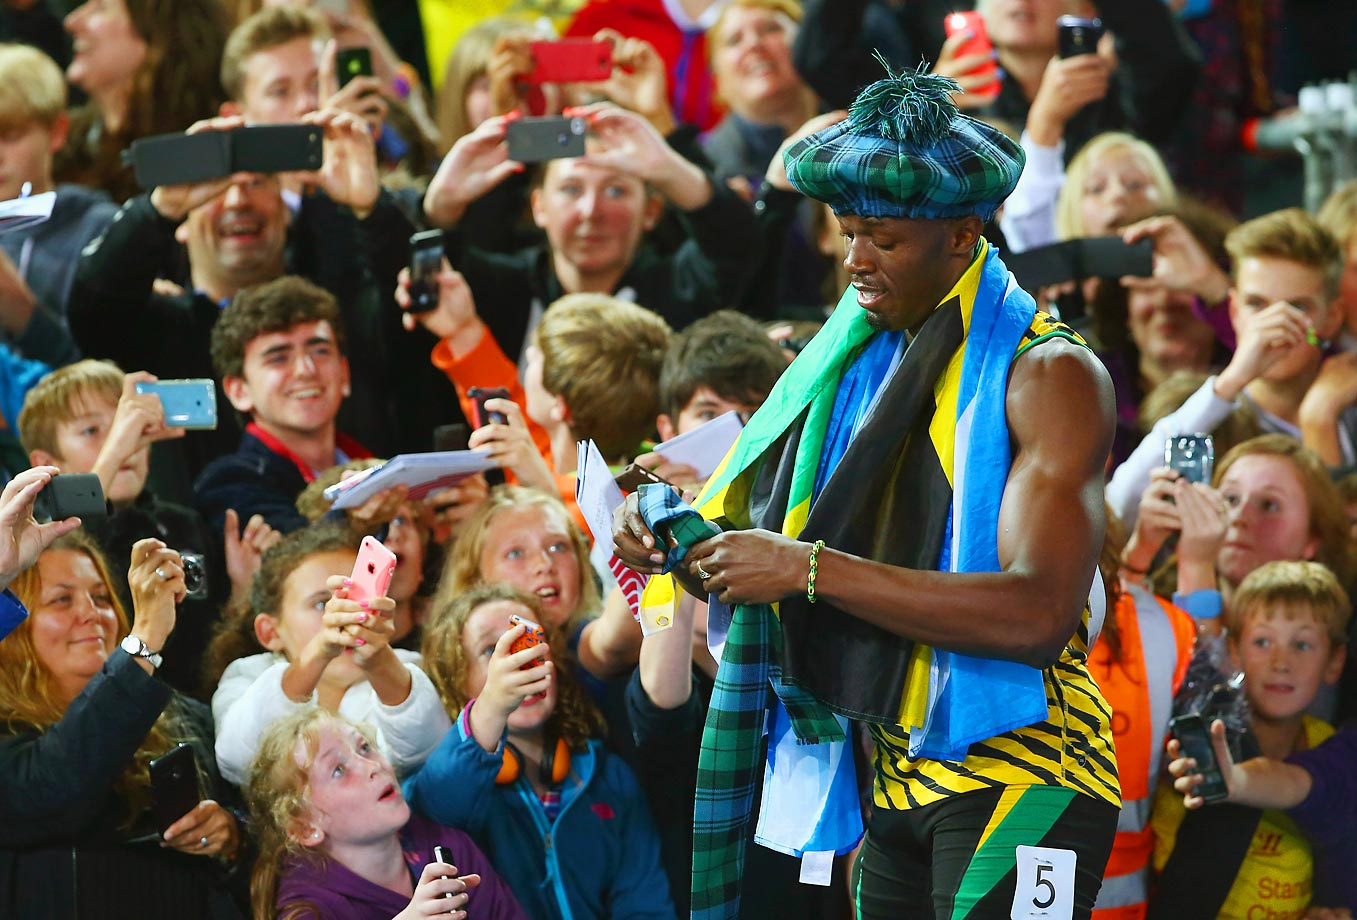 Usain Bolt of Jamaica greets fans as he celebrates winning gold in the Men's 4x100 metres relay final at Hampden Park during Day Ten of the Glasgow 2014 Commonwealth Games on August 2, 2014 in Glasgow, United Kingdom.